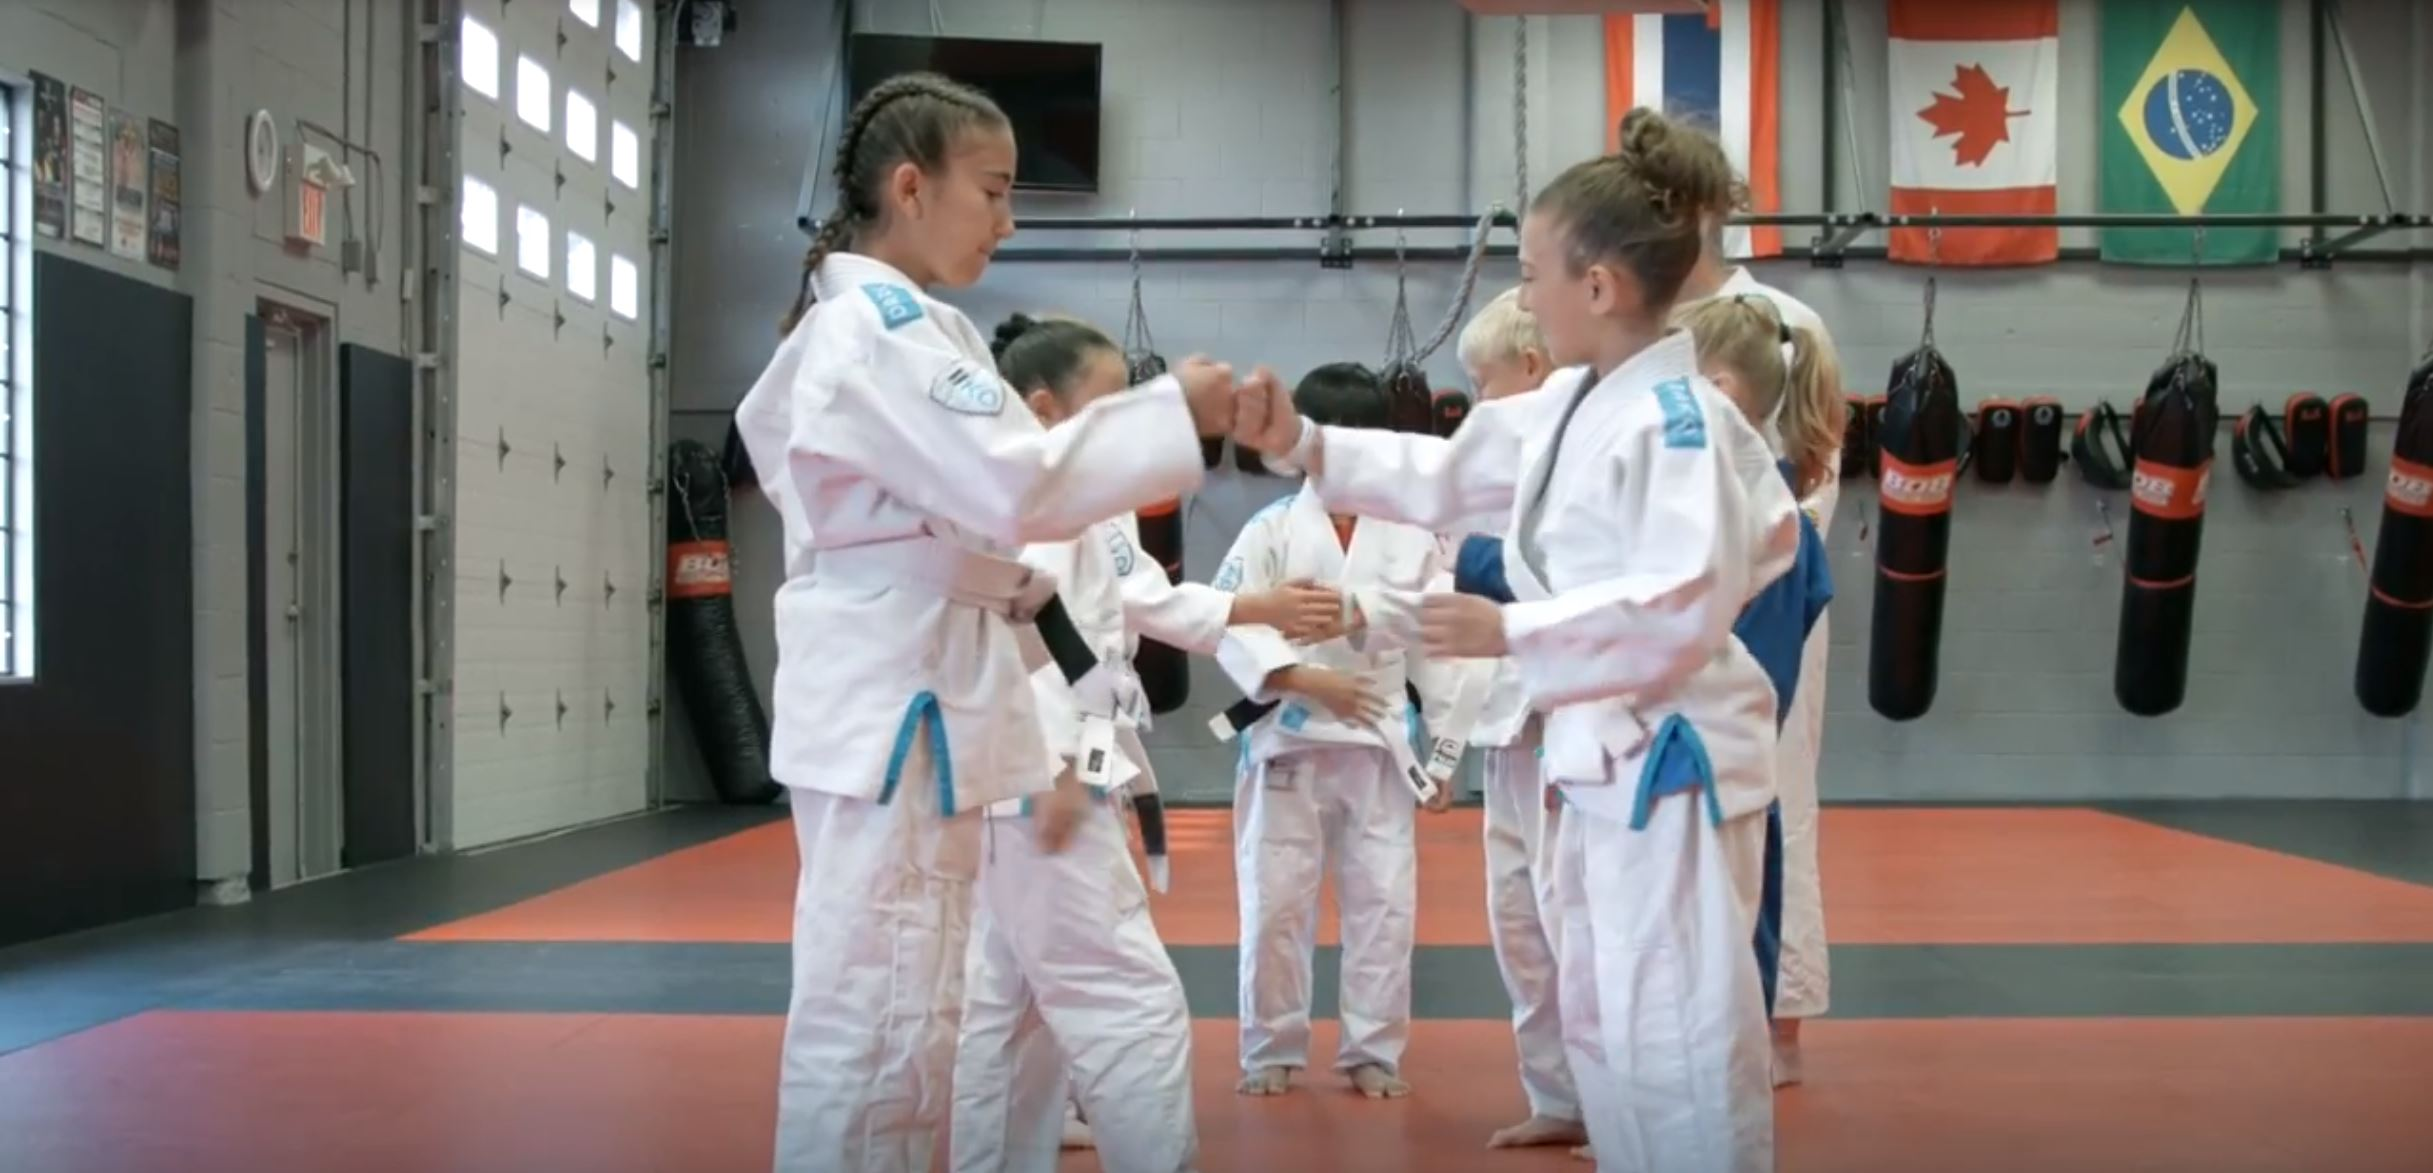 Kids Martial Arts Class: Bring a Friend Night